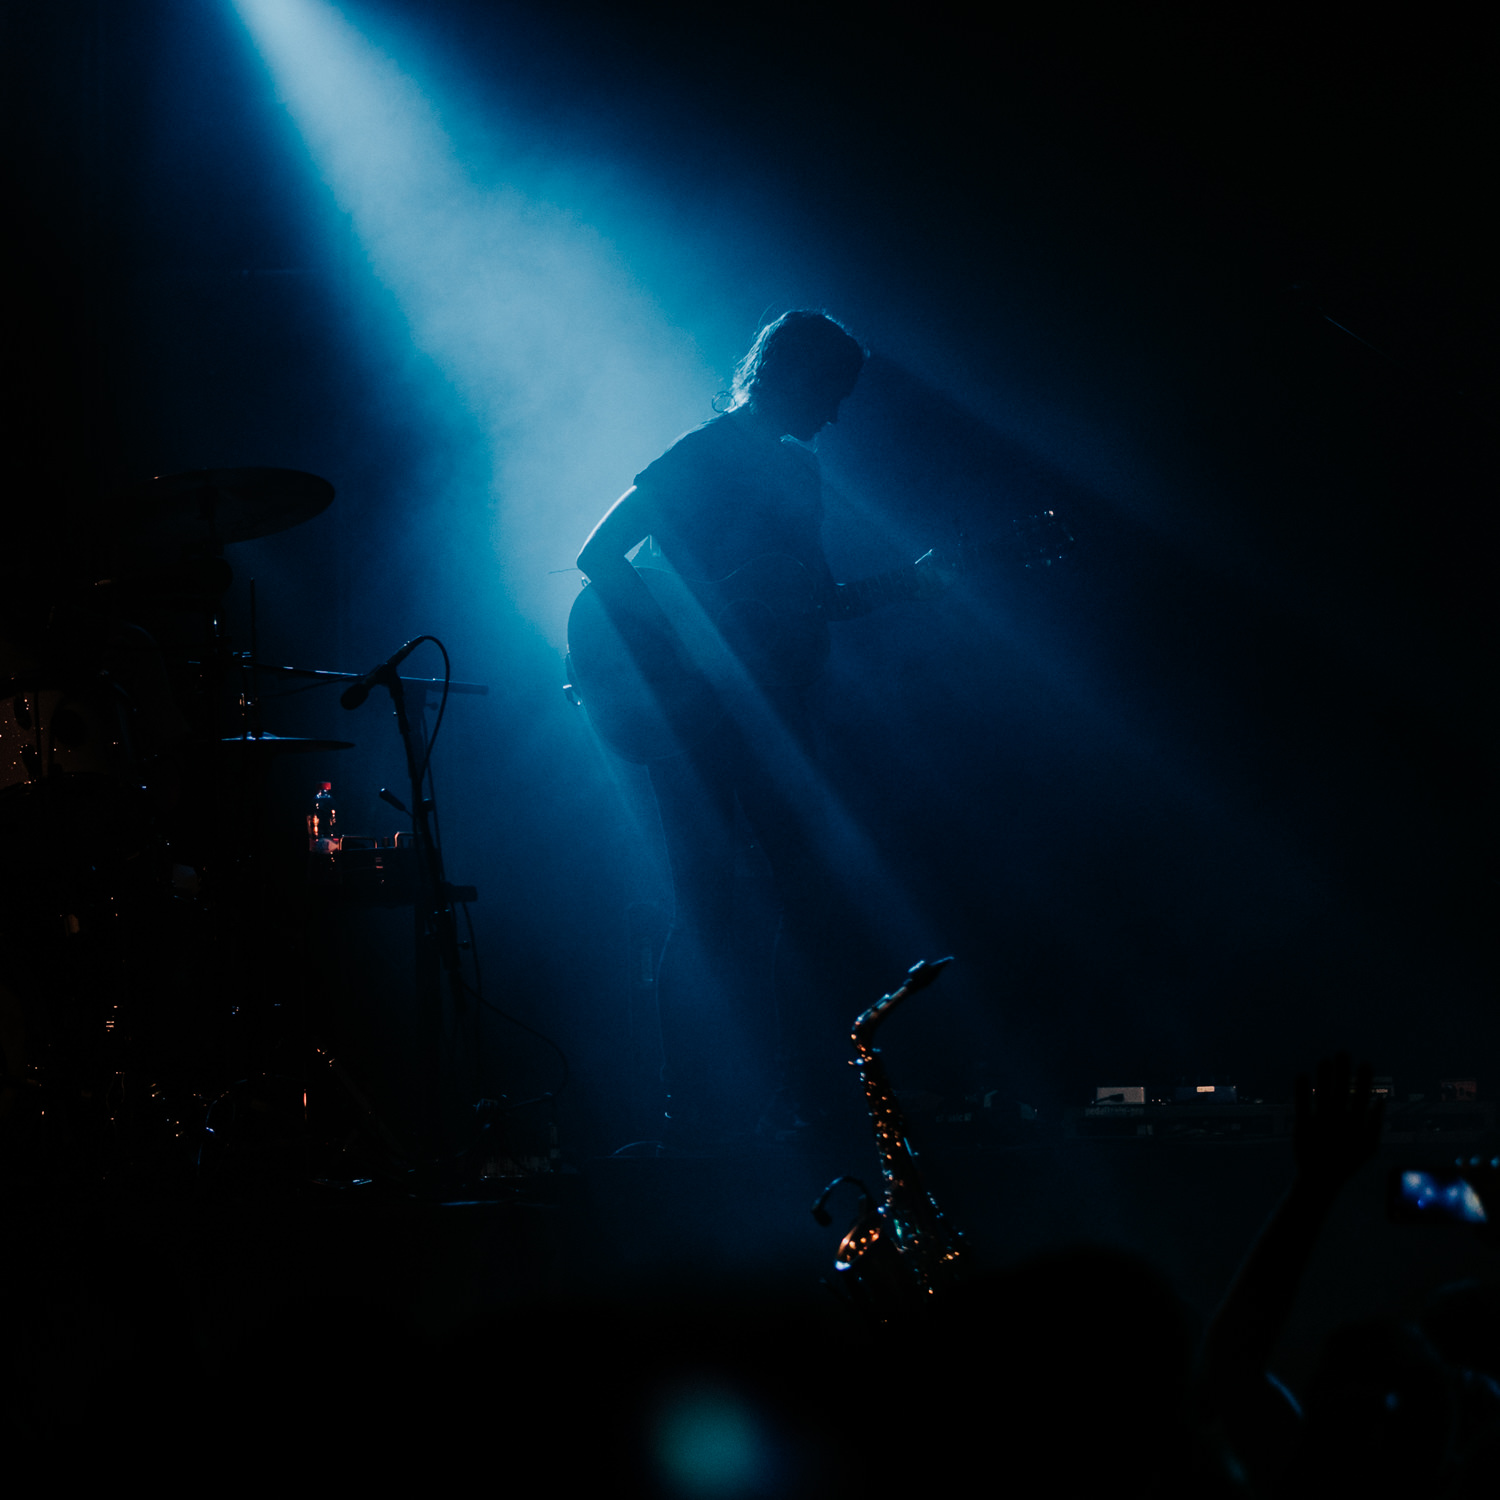 emily-moore-dramatic-silhouette-on-stage-AnnaLeeMedia